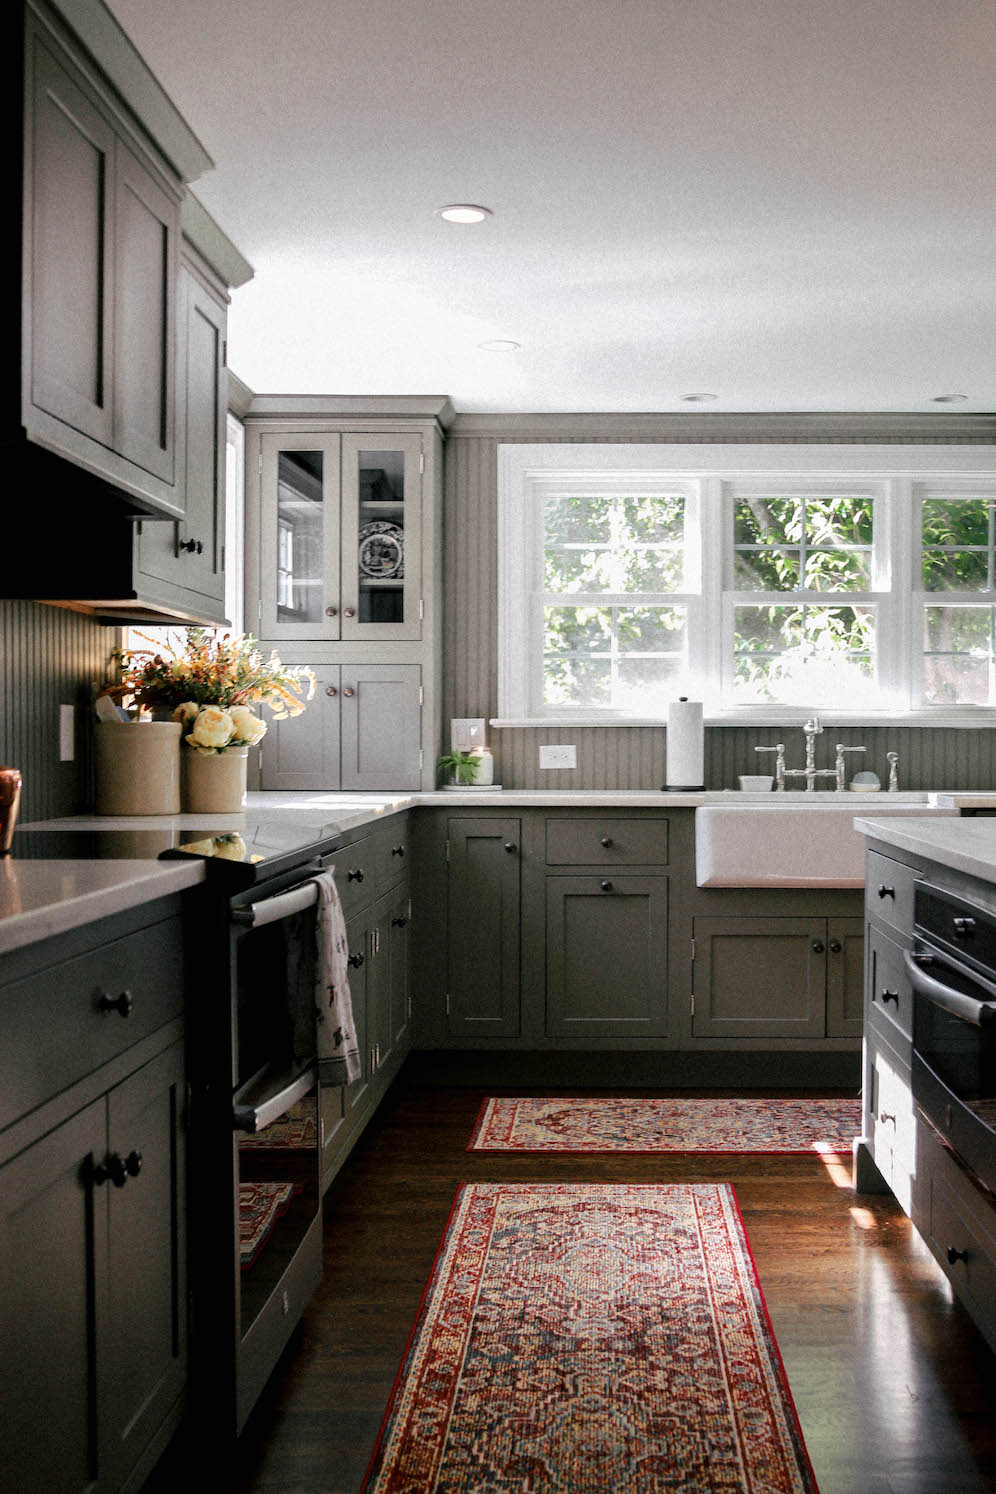 Before After Colonial Kitchen Reveal The Coastal Confidence Kitchen Remodel Small Colonial Kitchen Remodel 1920s Kitchen Remodel